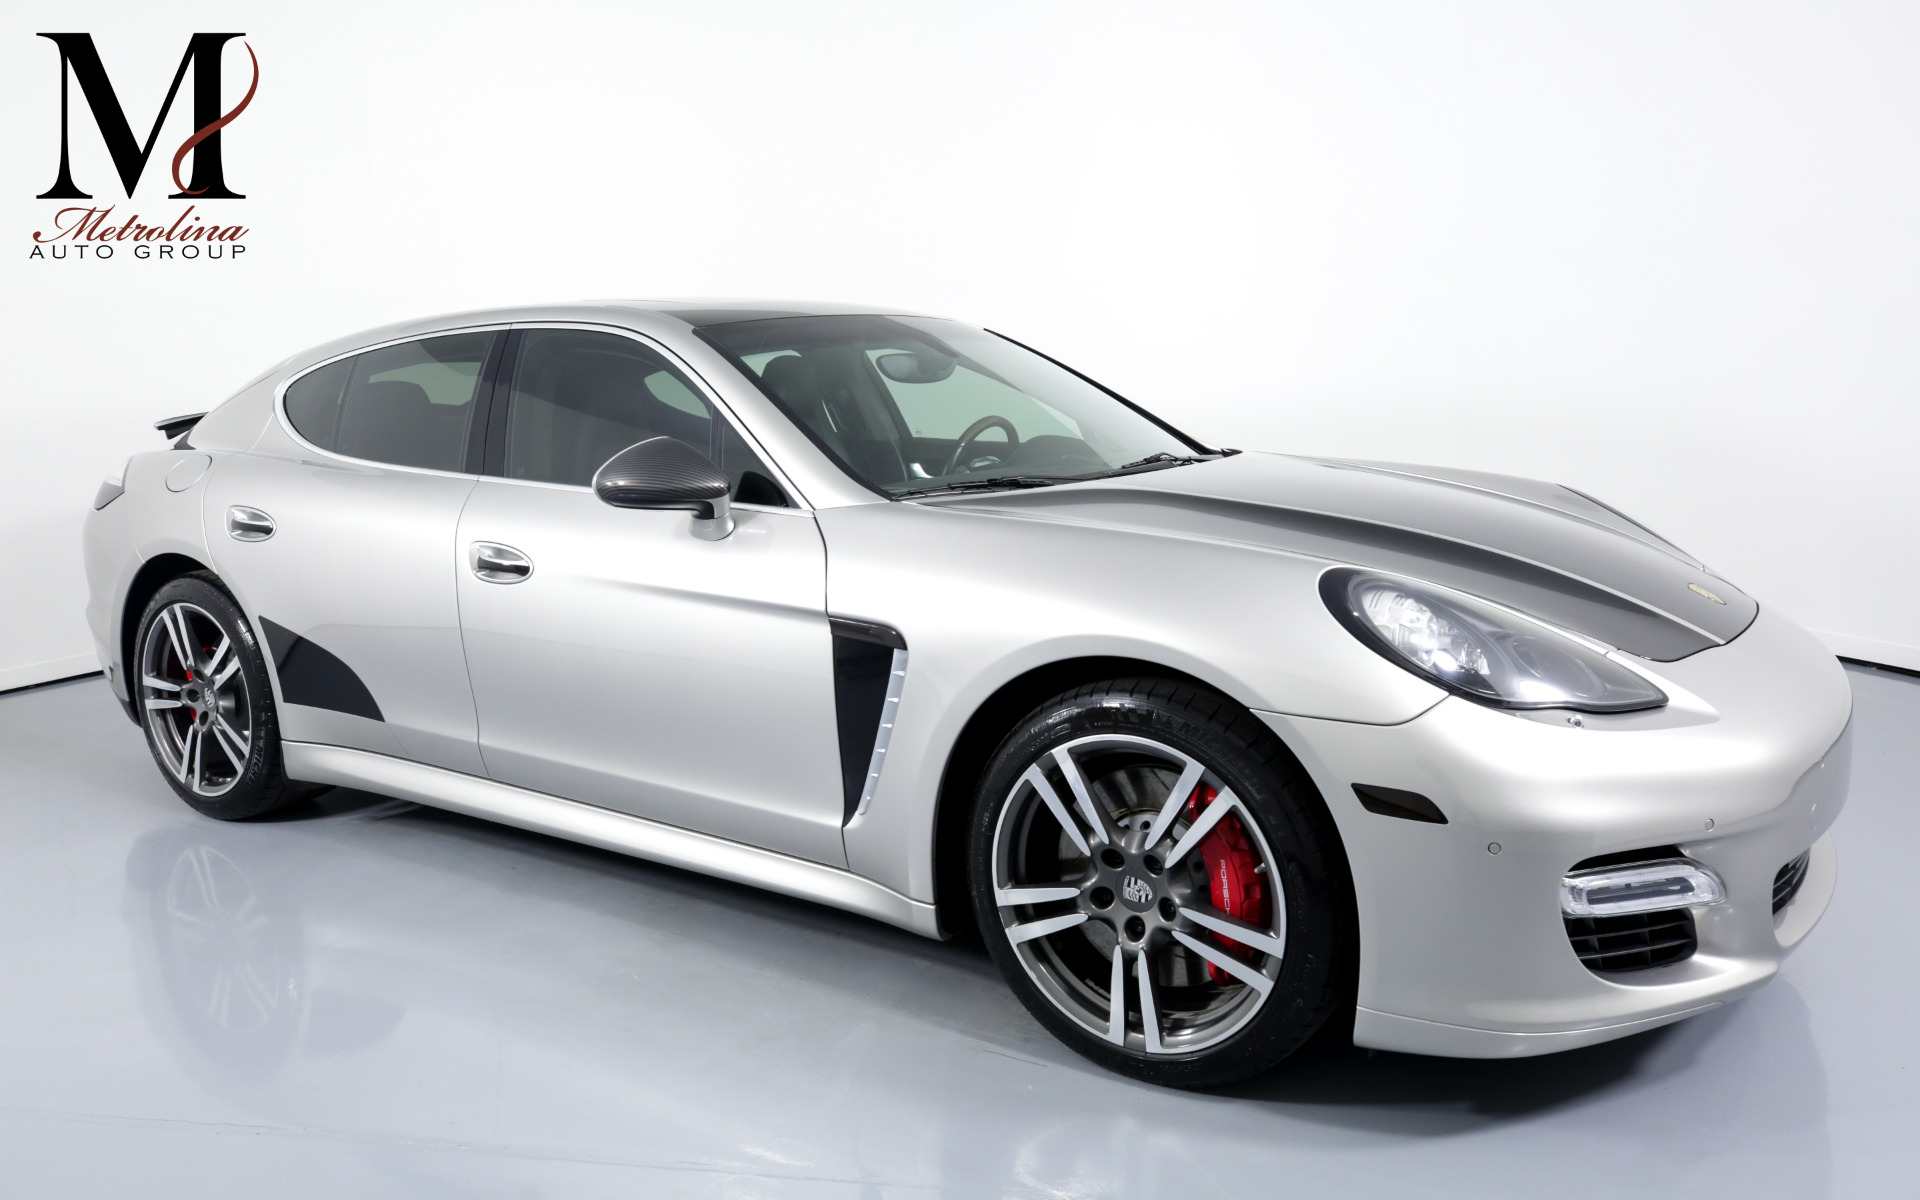 Used 2012 Porsche Panamera Turbo for sale $51,996 at Metrolina Auto Group in Charlotte NC 28217 - 1